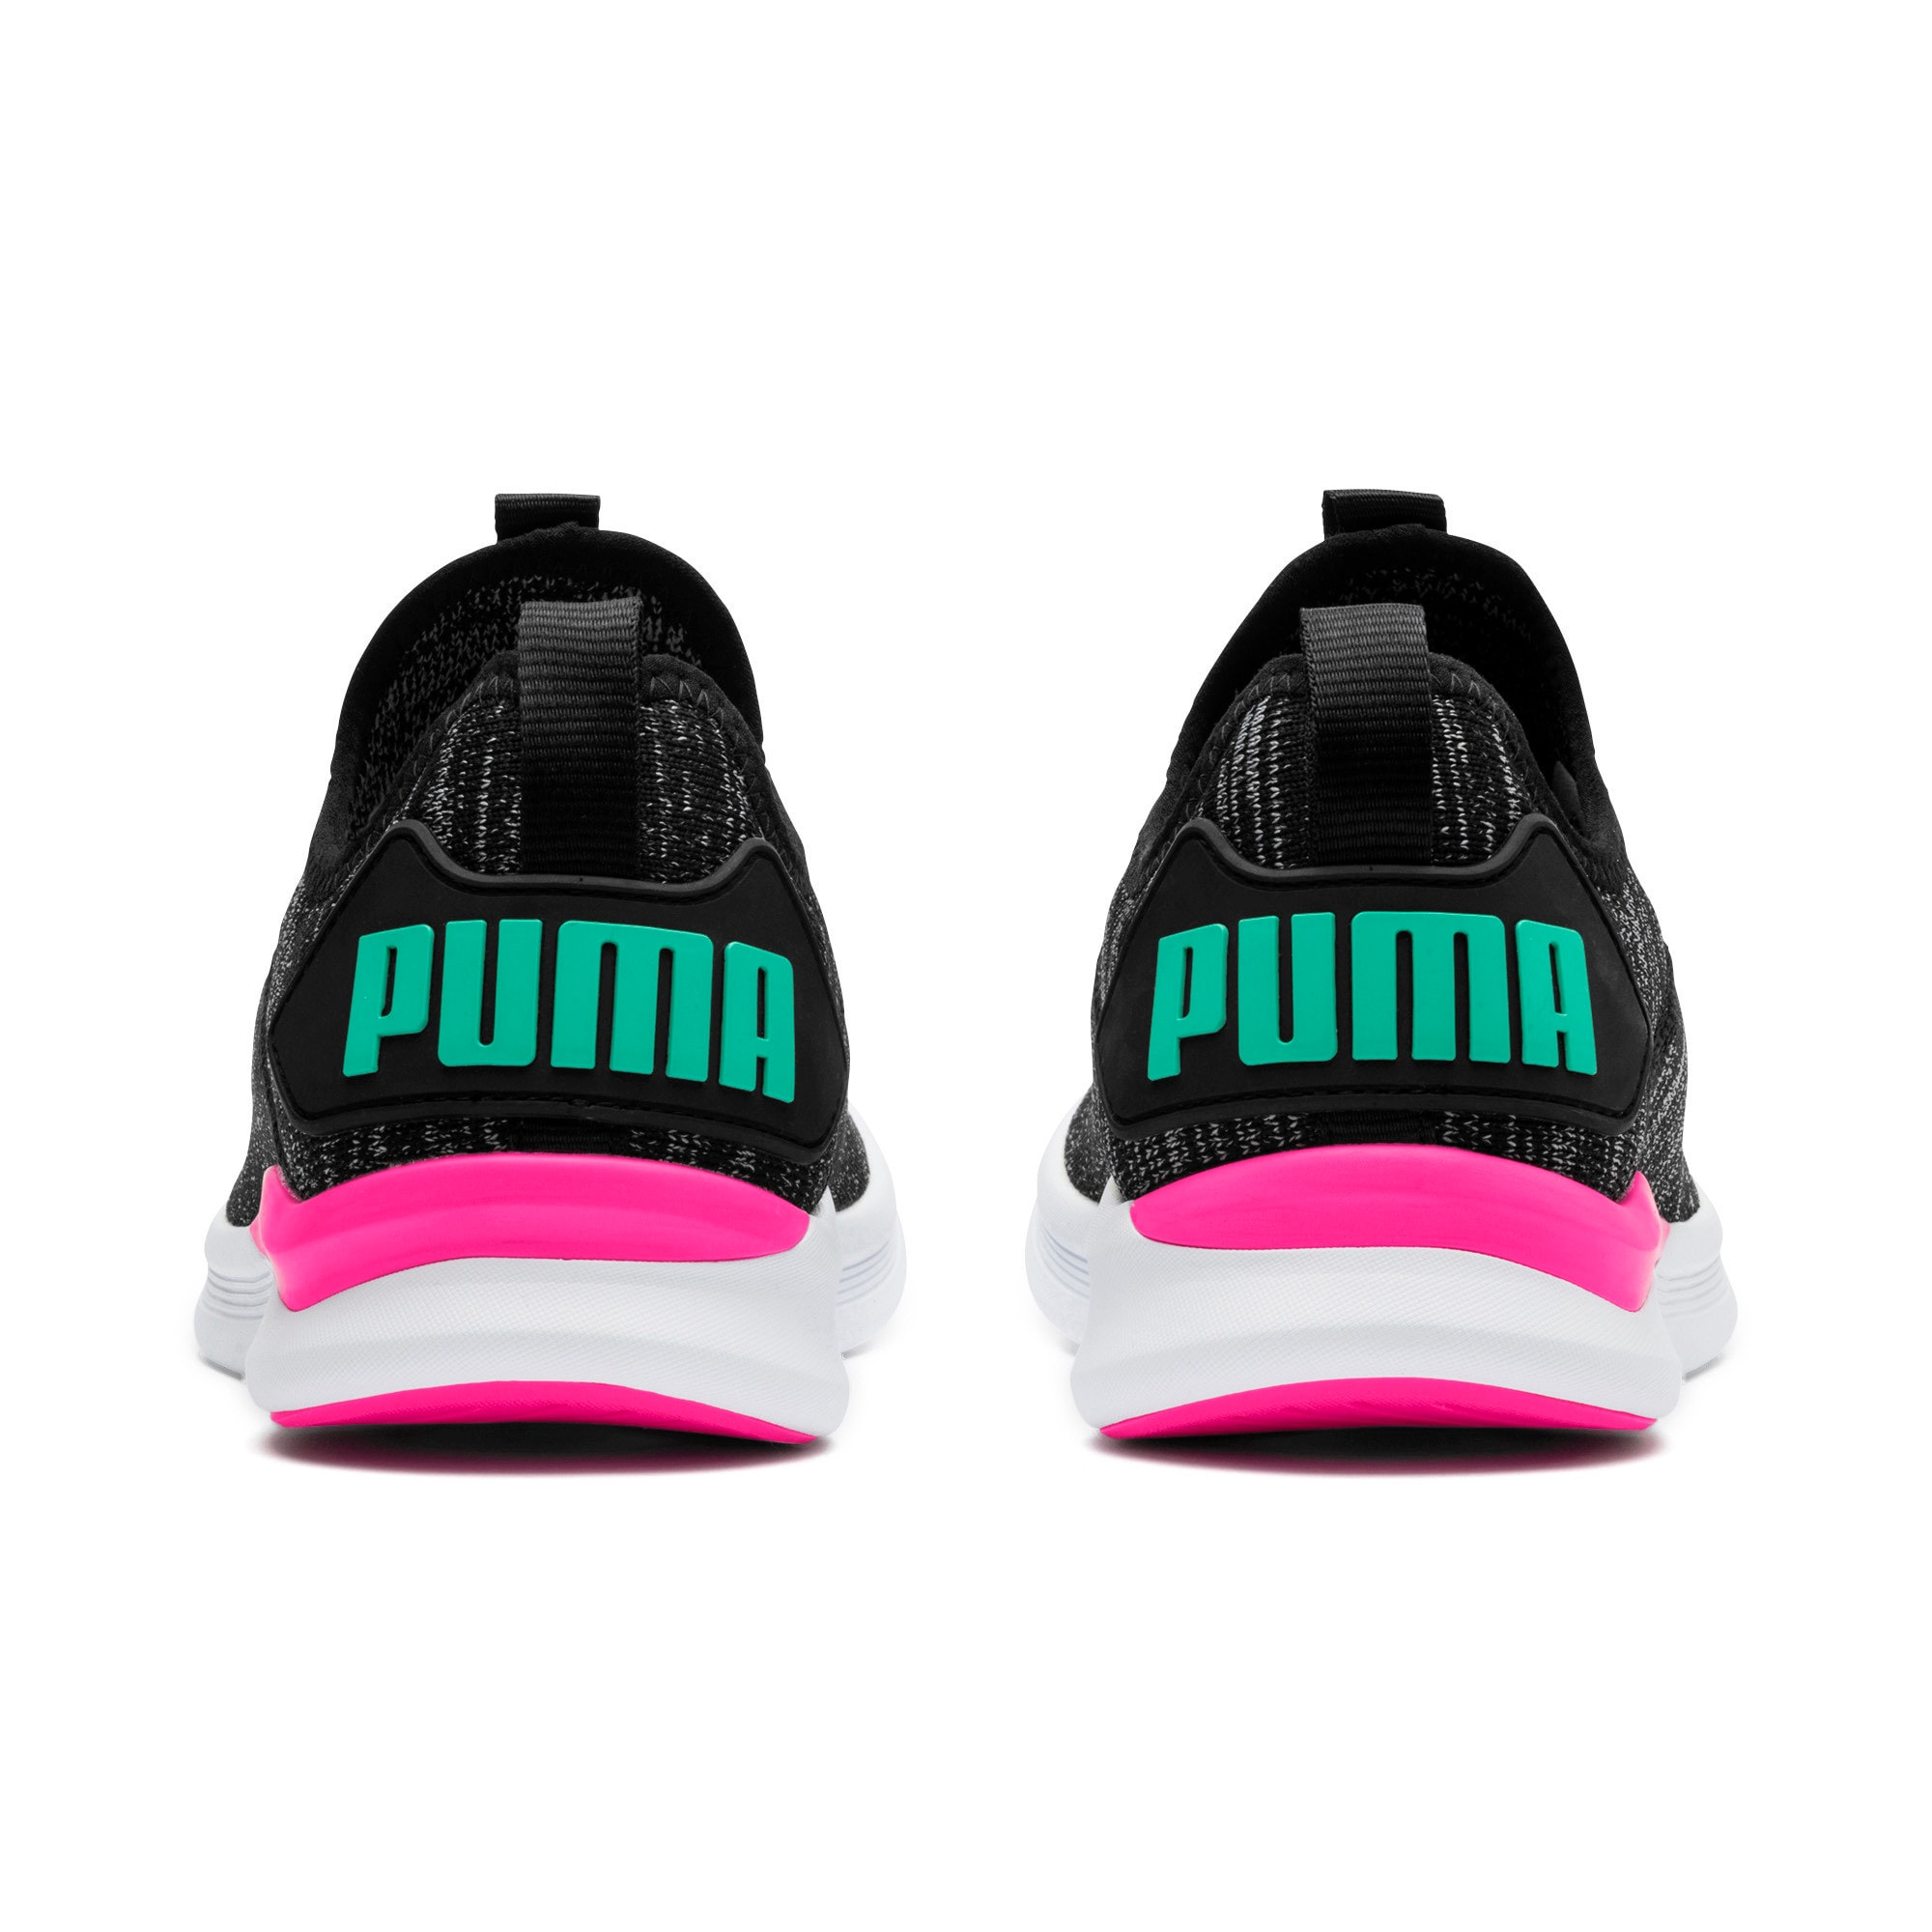 Thumbnail 4 of IGNITE Flash evoKNIT Women's Training Shoes, Black-PINK-Biscay Green, medium